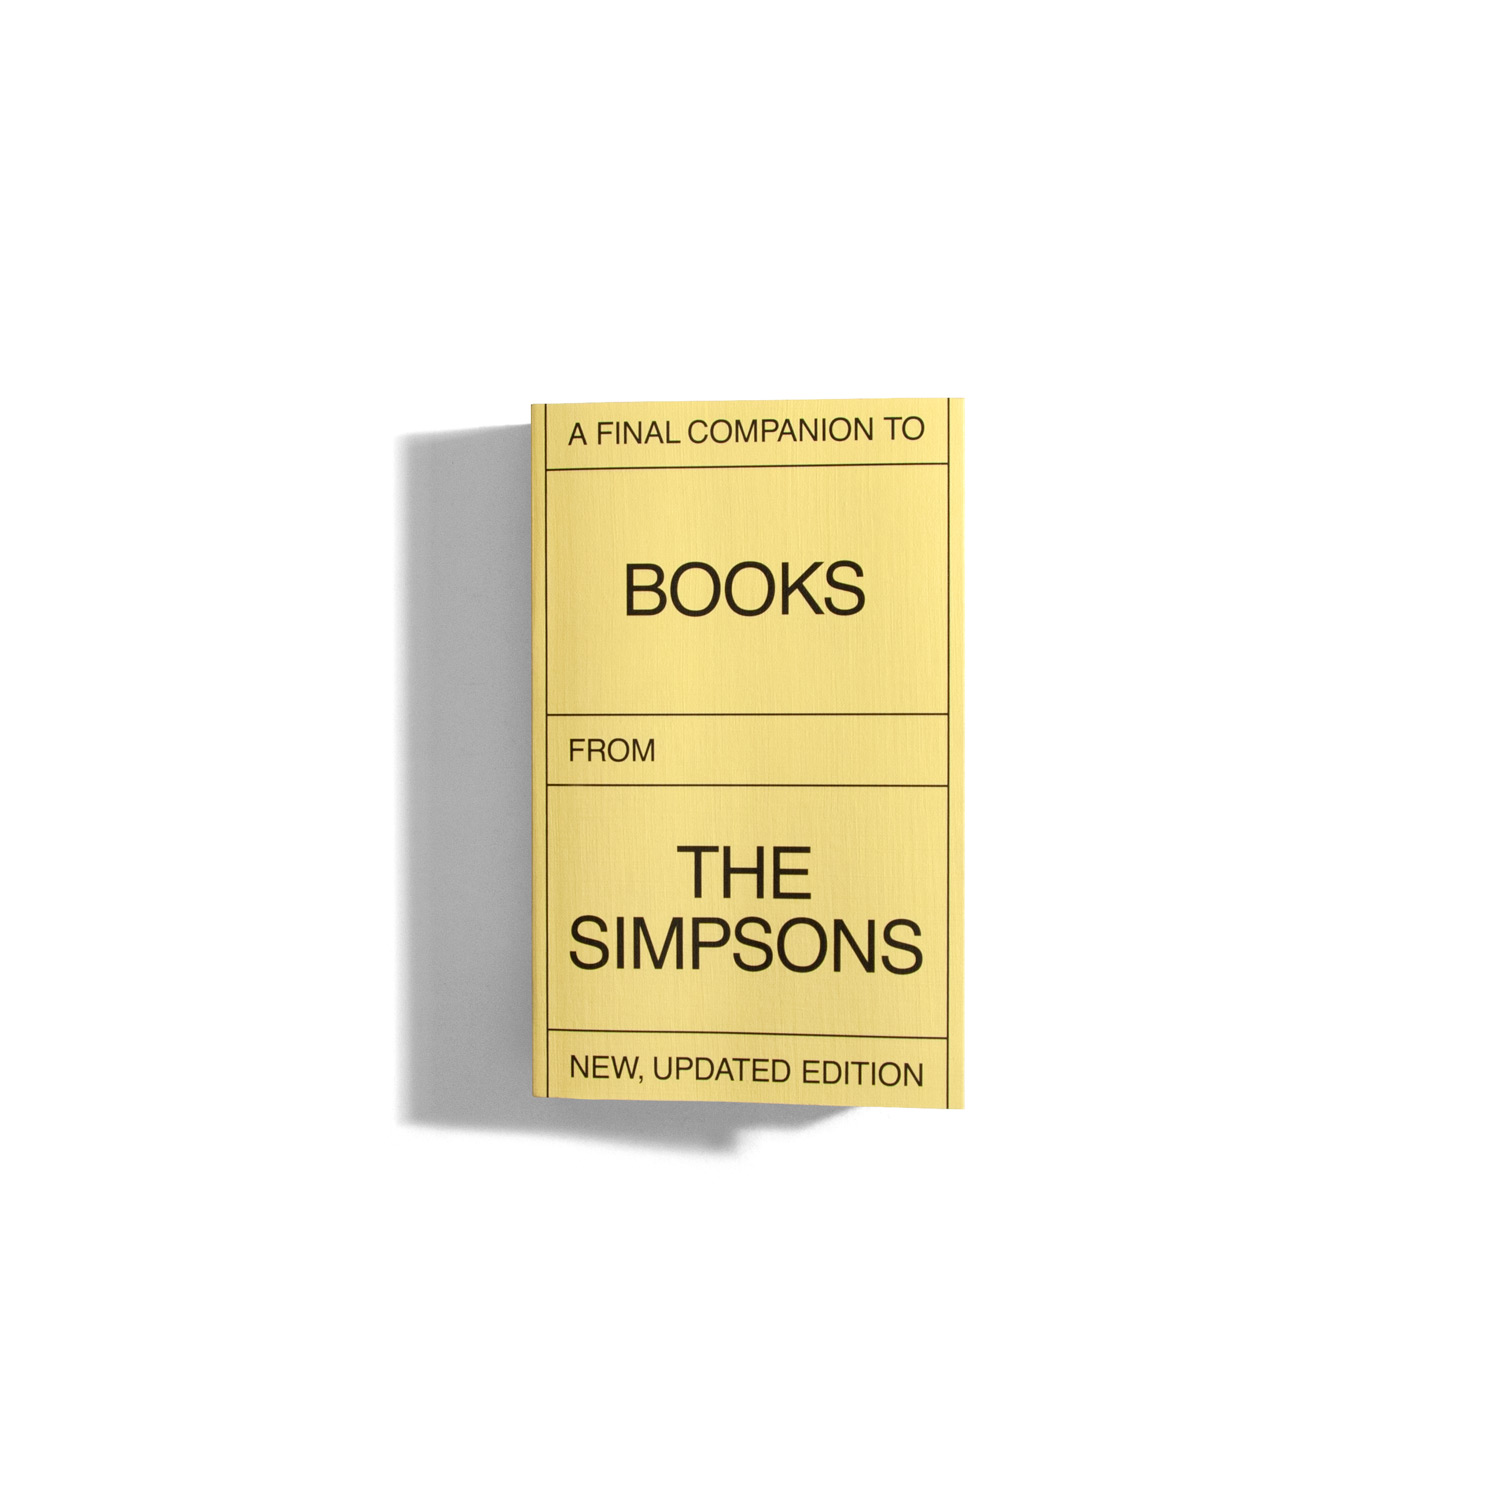 The final companion to books from the Simpsons